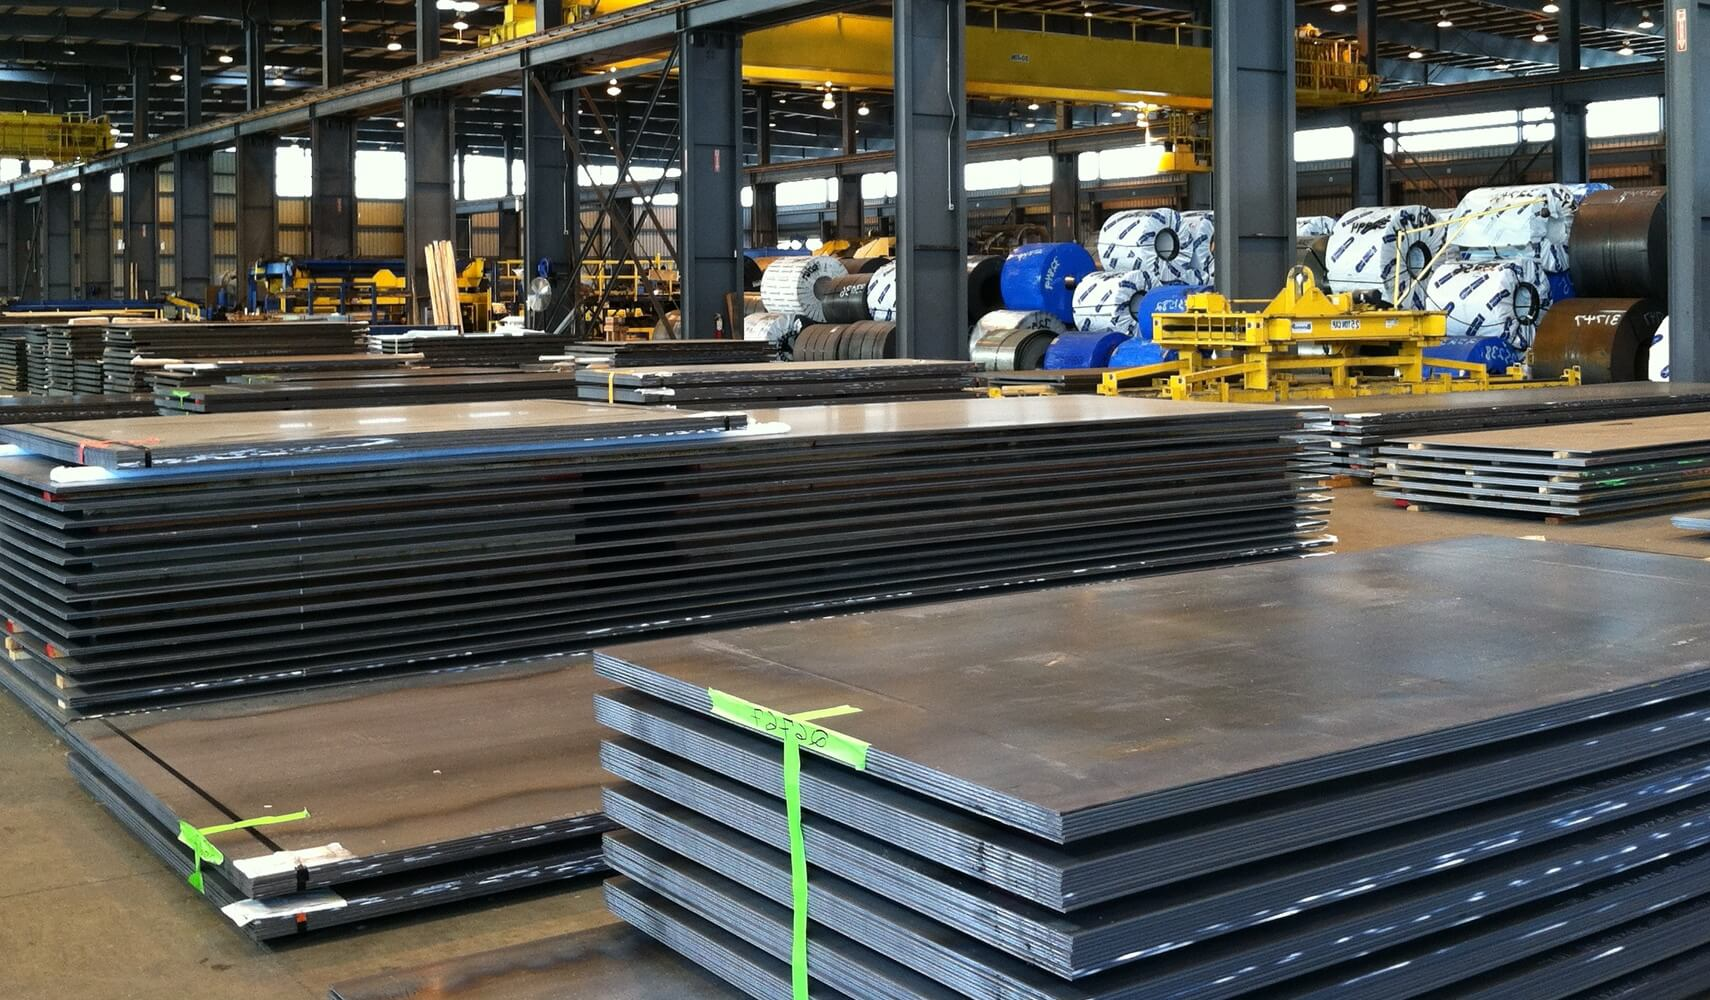 ASTM A516 Grade 70 Carbon Steel Plate